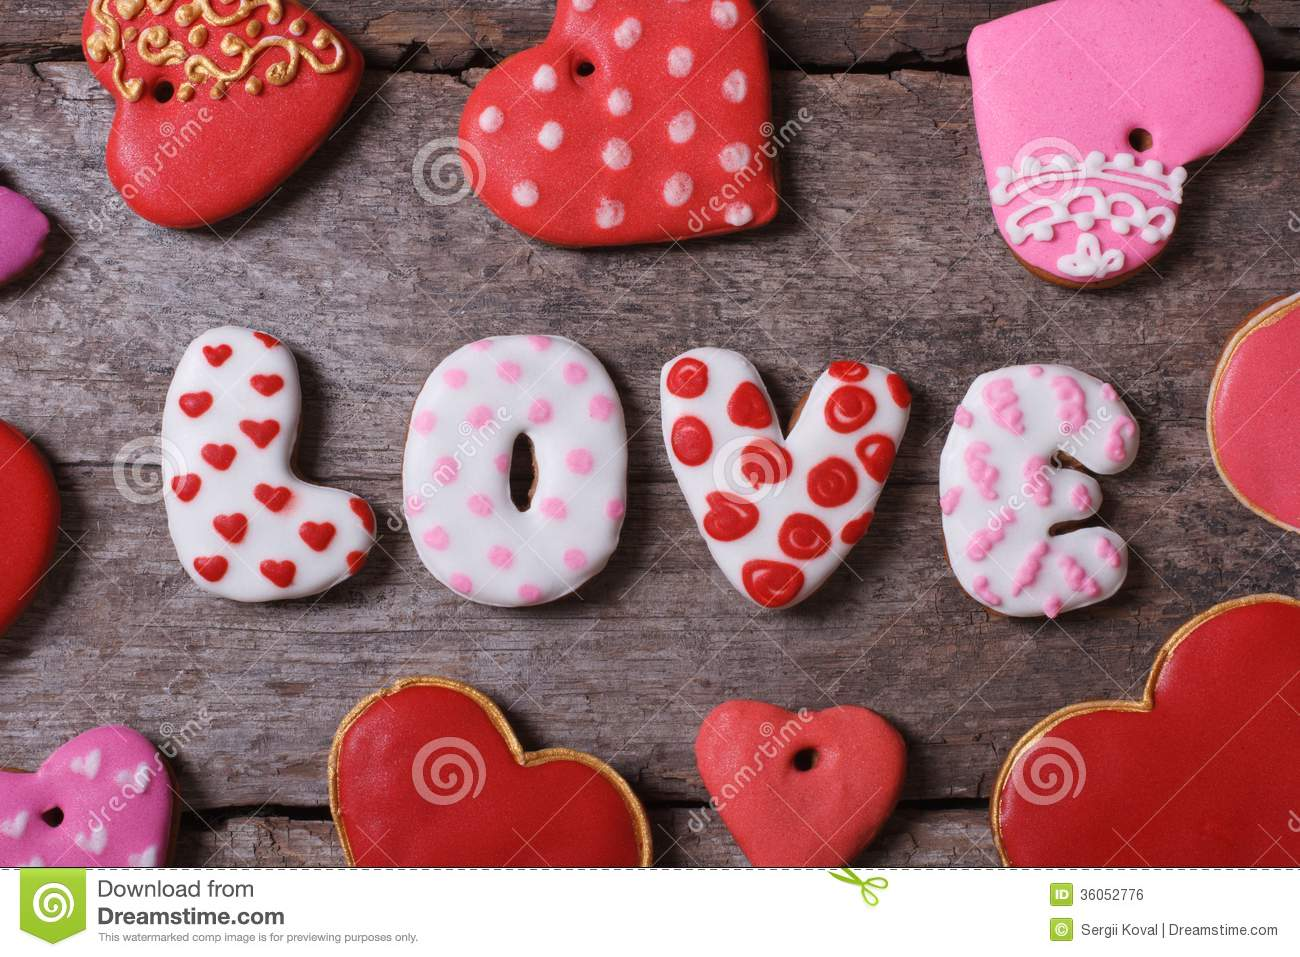 Love And Heart Beautiful Cakes On A Wooden Table Royalty